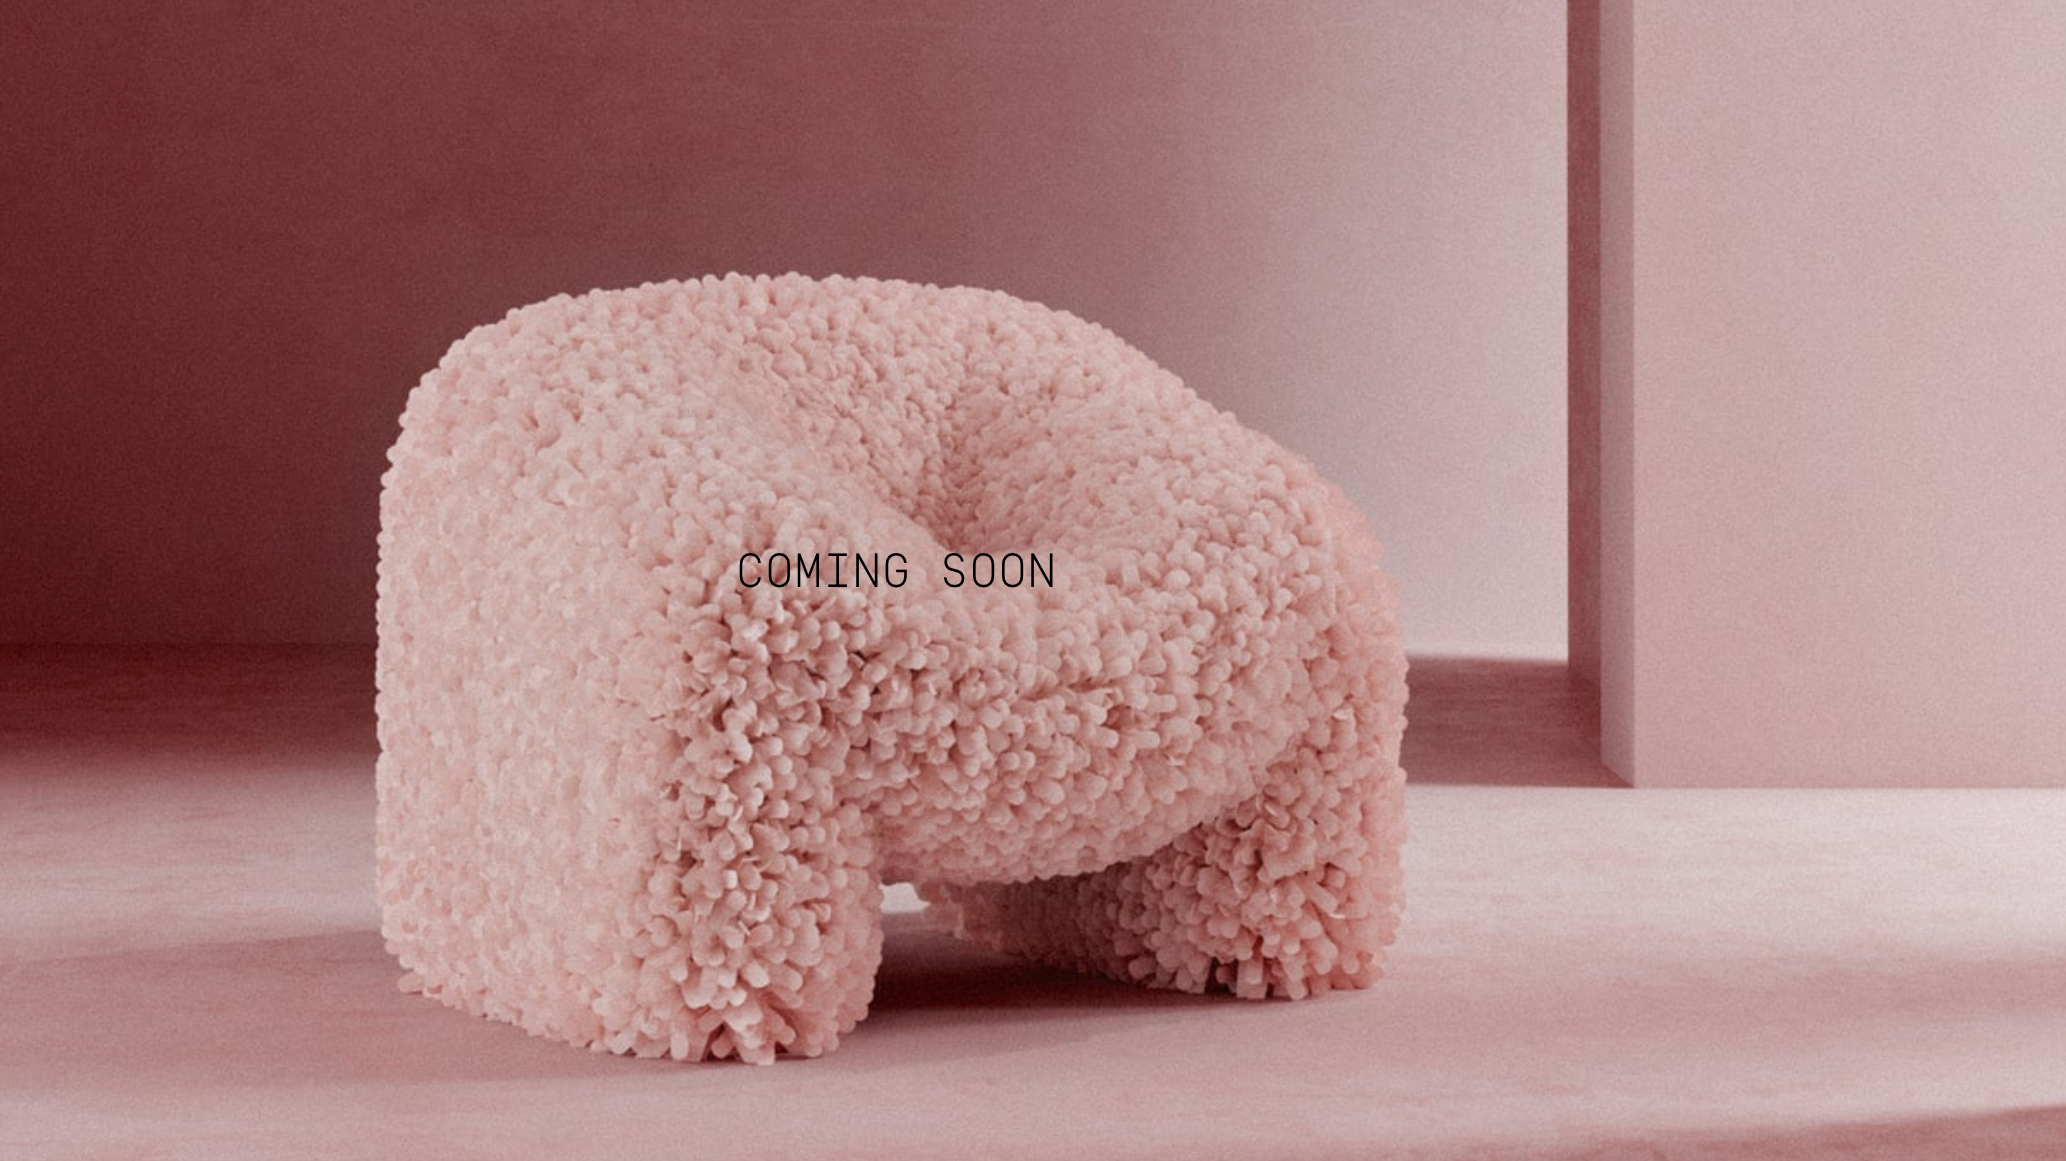 A rendering of a pink Hortensia armchair by Argentinian designer Andrés Reisinger.